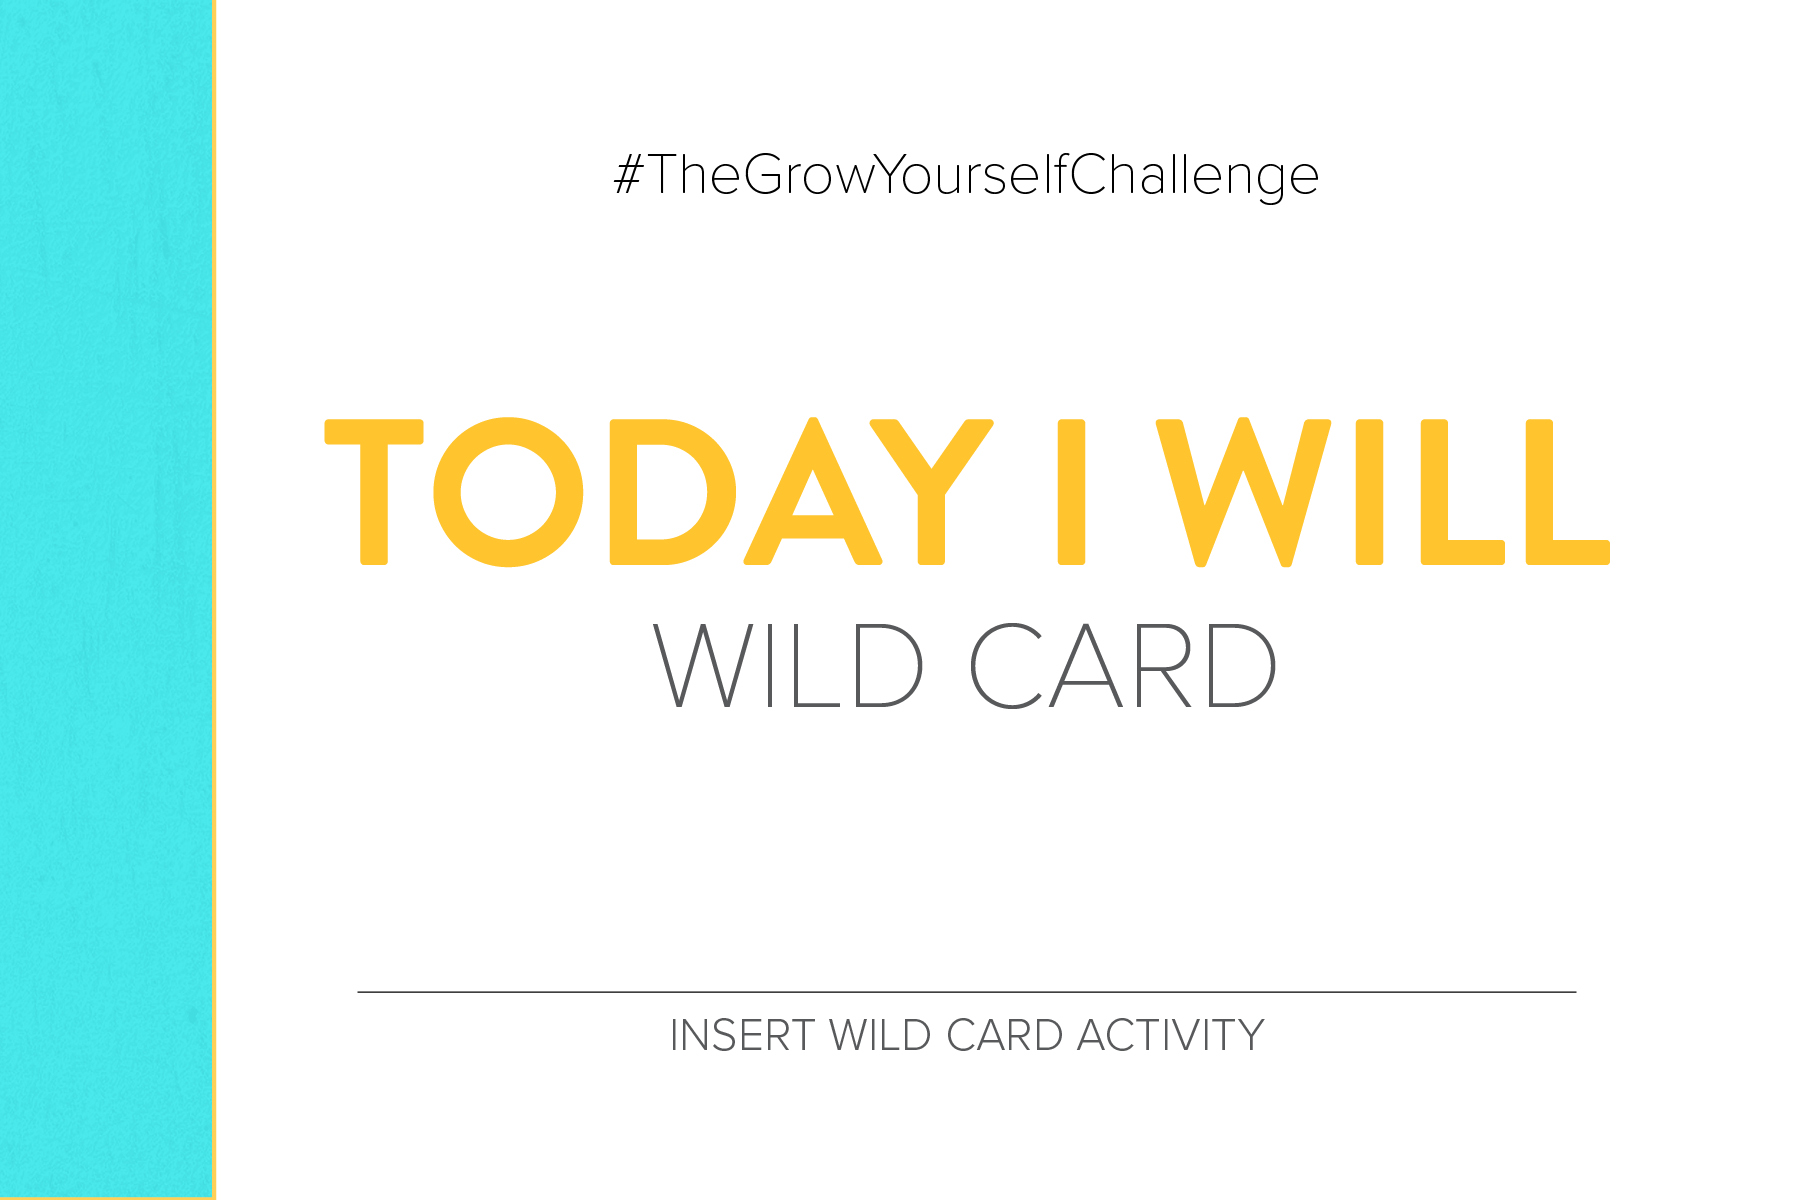 #TheGrowYourselfChallenge Today i will wild card insert wild card activity #Positiveaffirmations